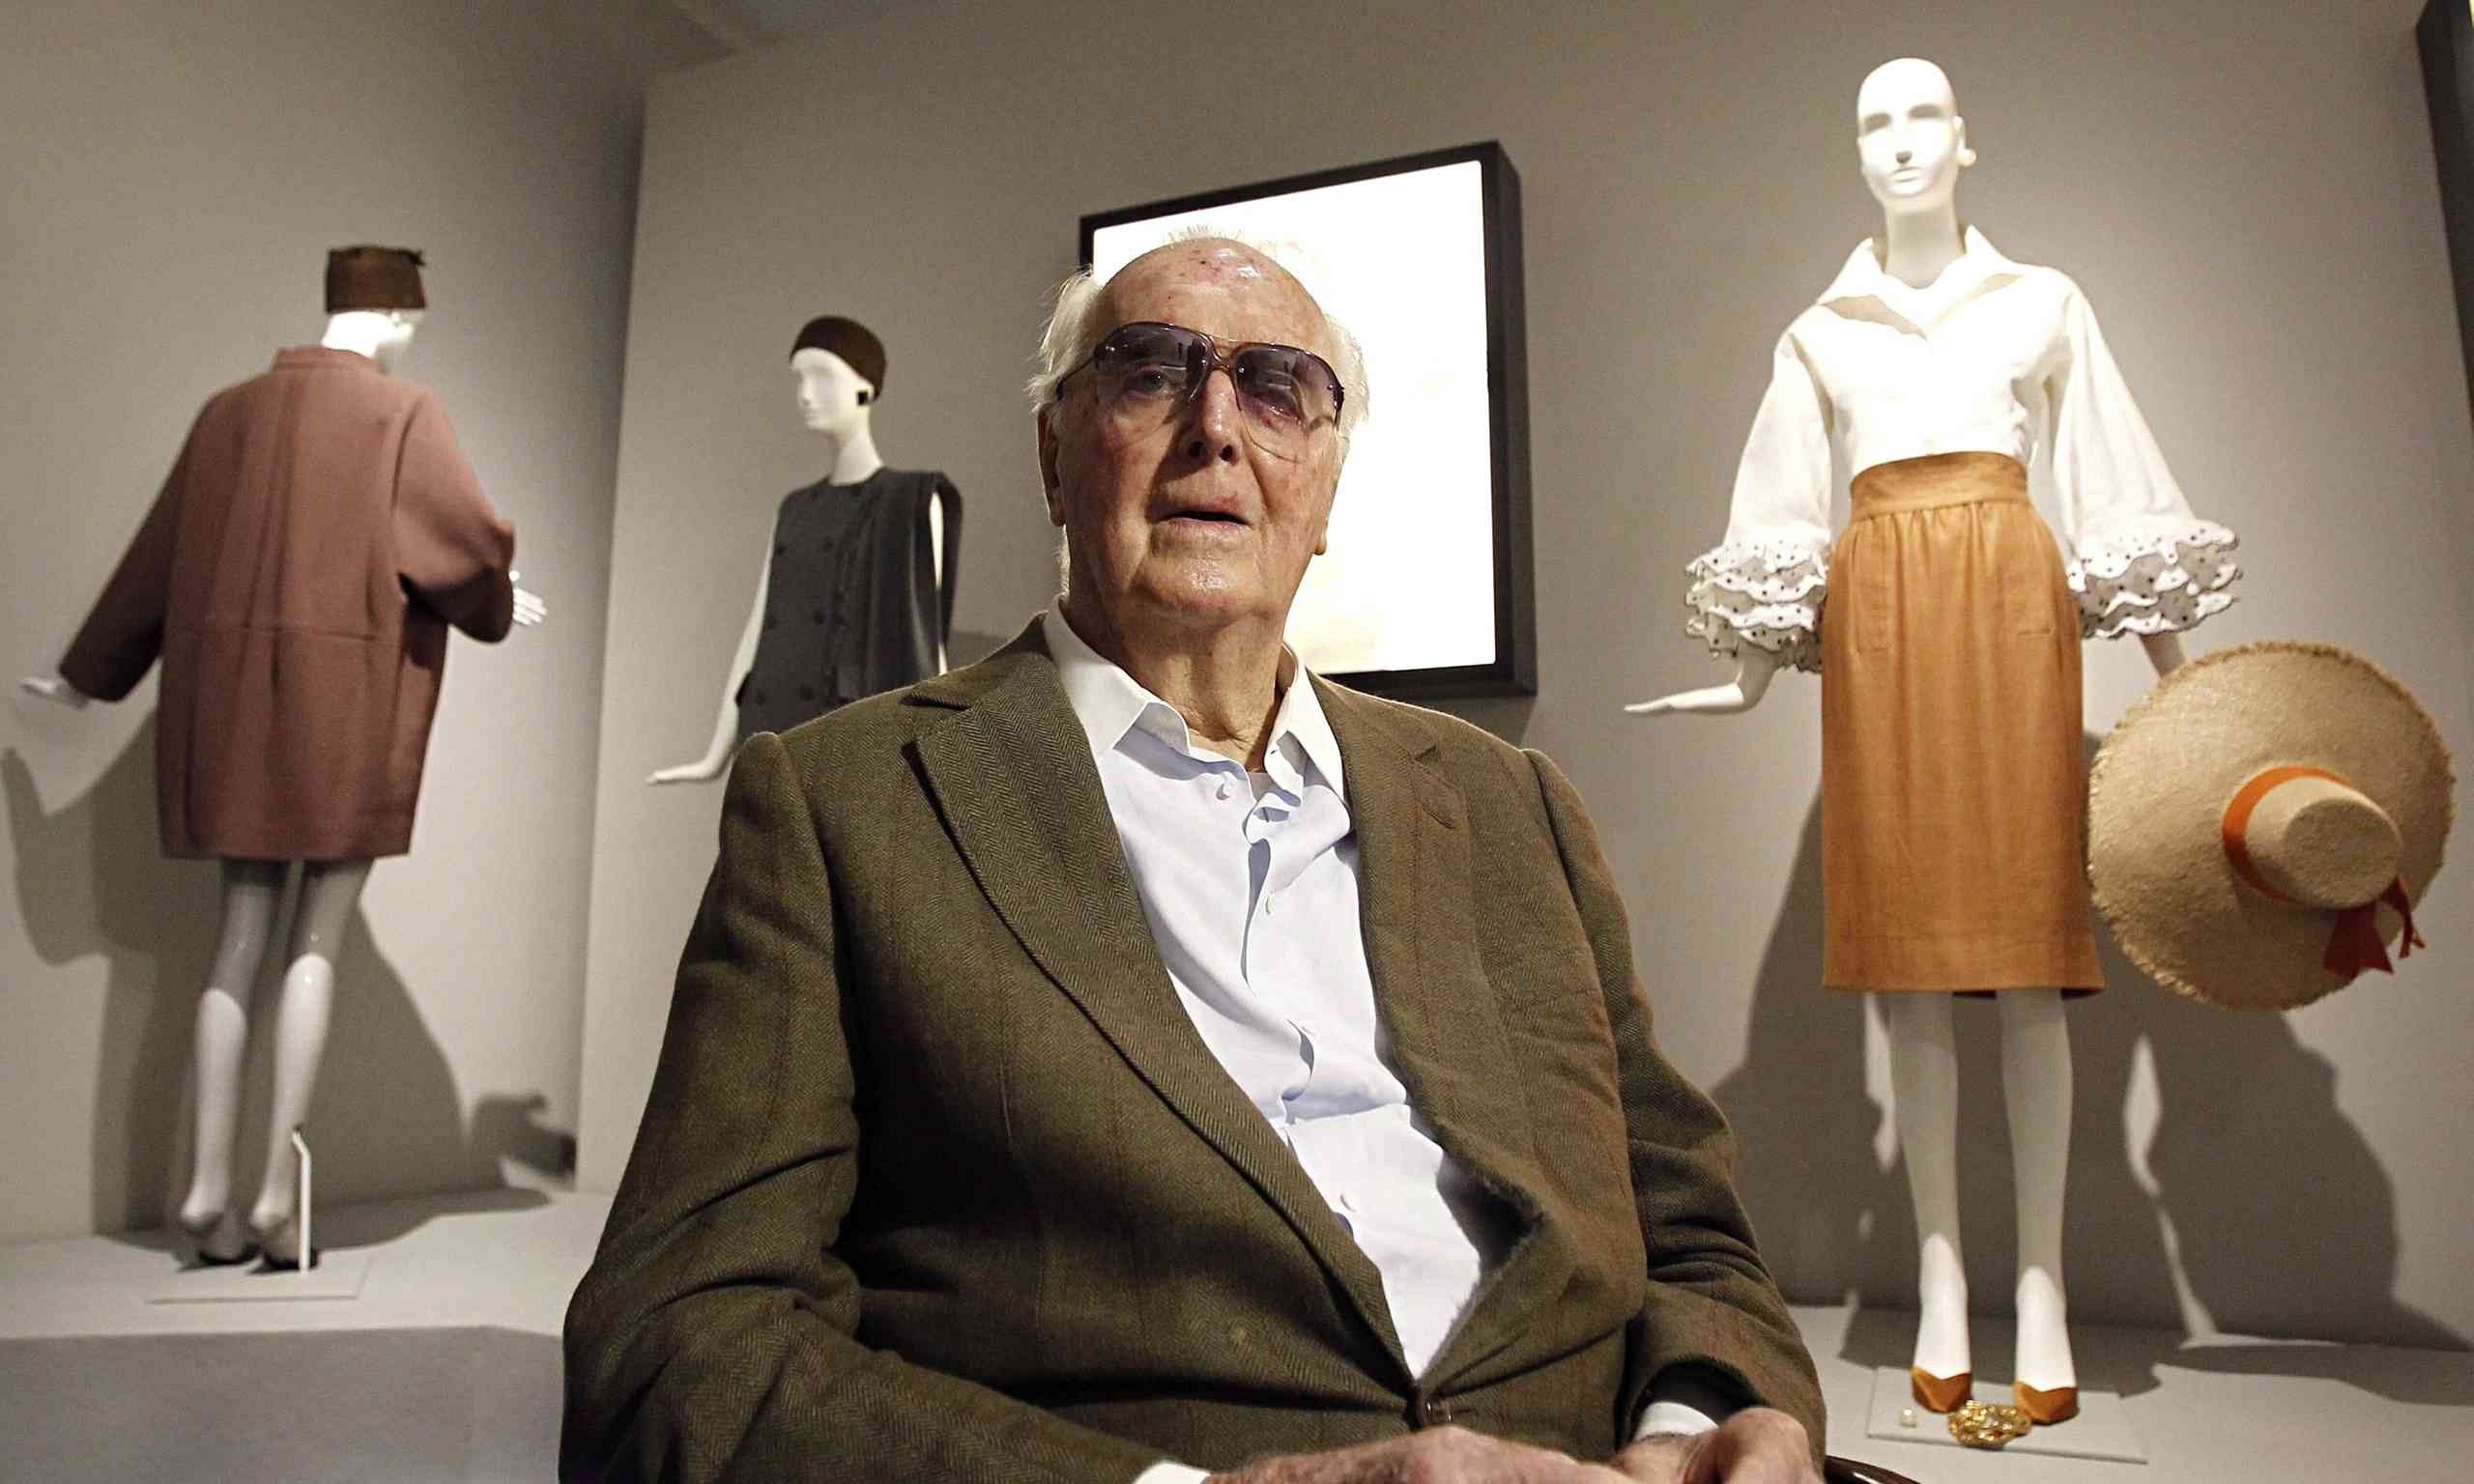 HUBERT DE GIVENCHY PRESENTS HIS FIRST RETROSPECTIVE IN MADRID